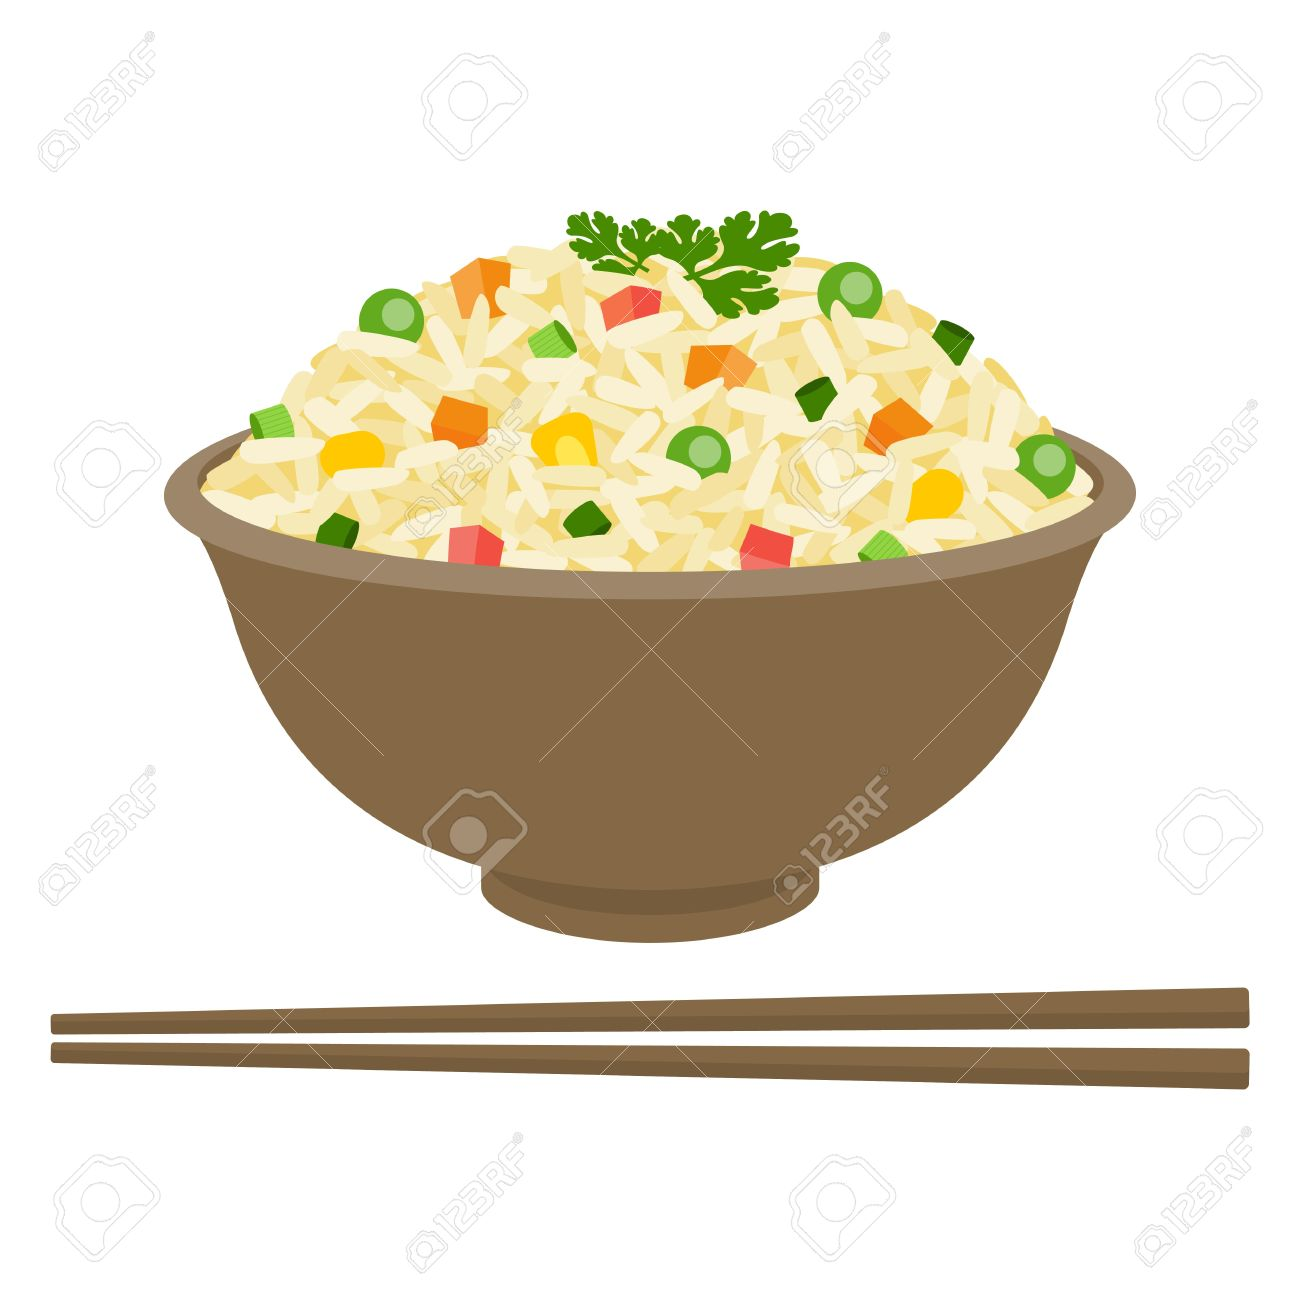 Fried rice in bowl with chopsticks, flat design.